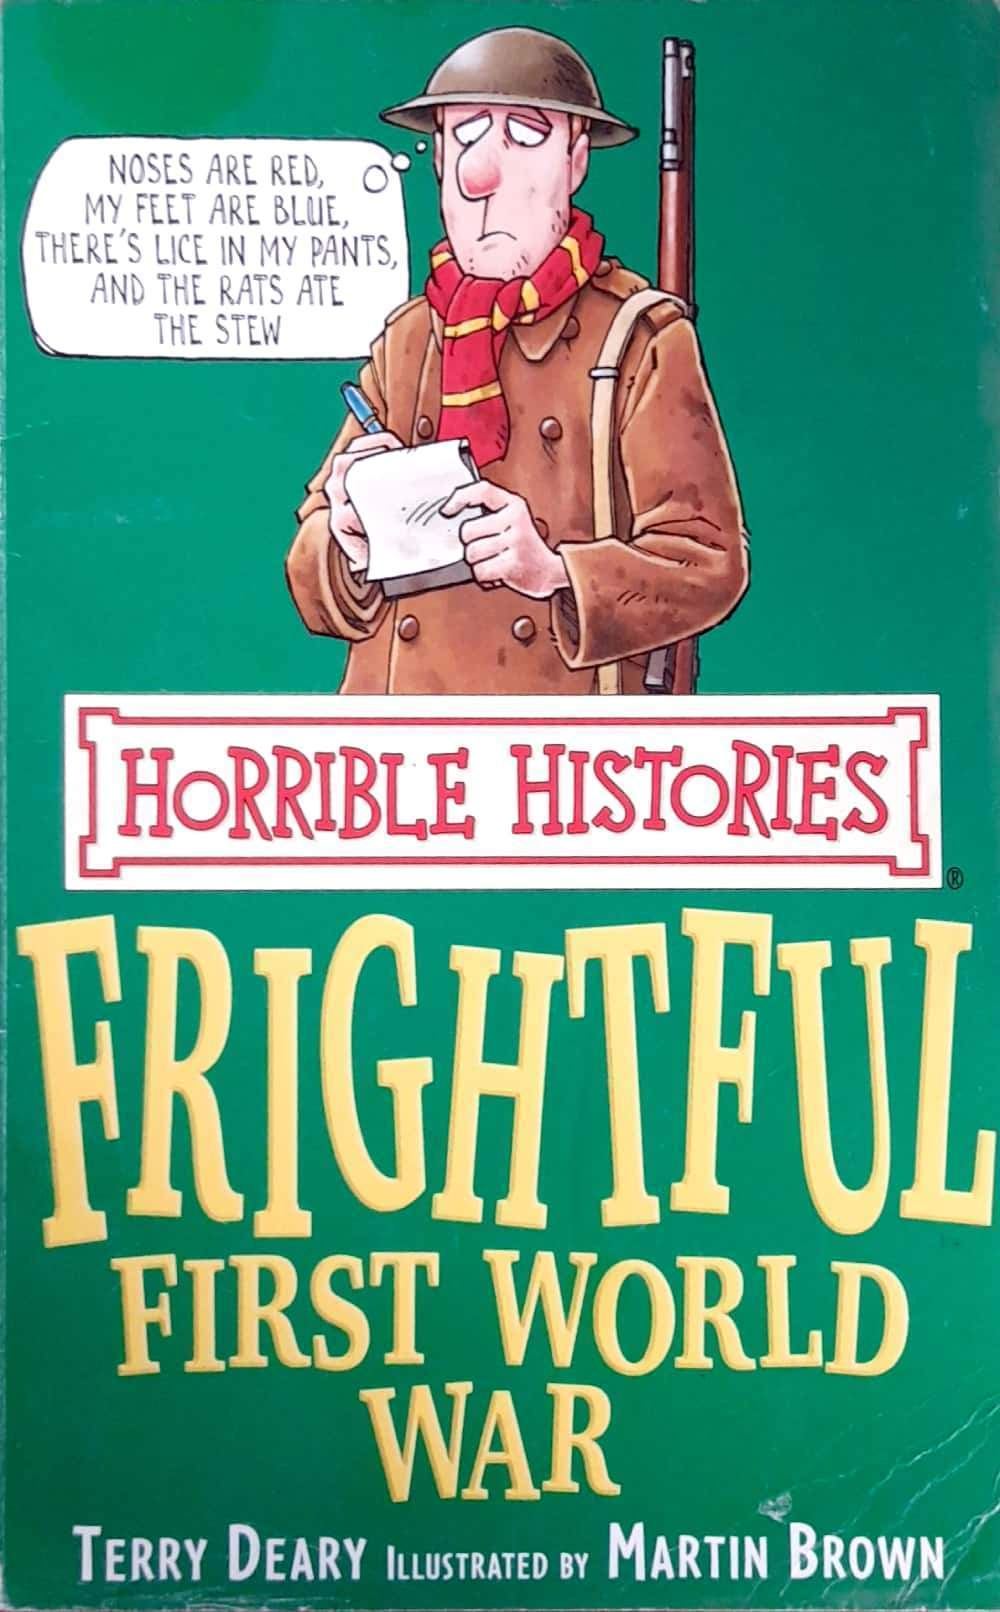 The Frightful First World War (Horrible Histories)